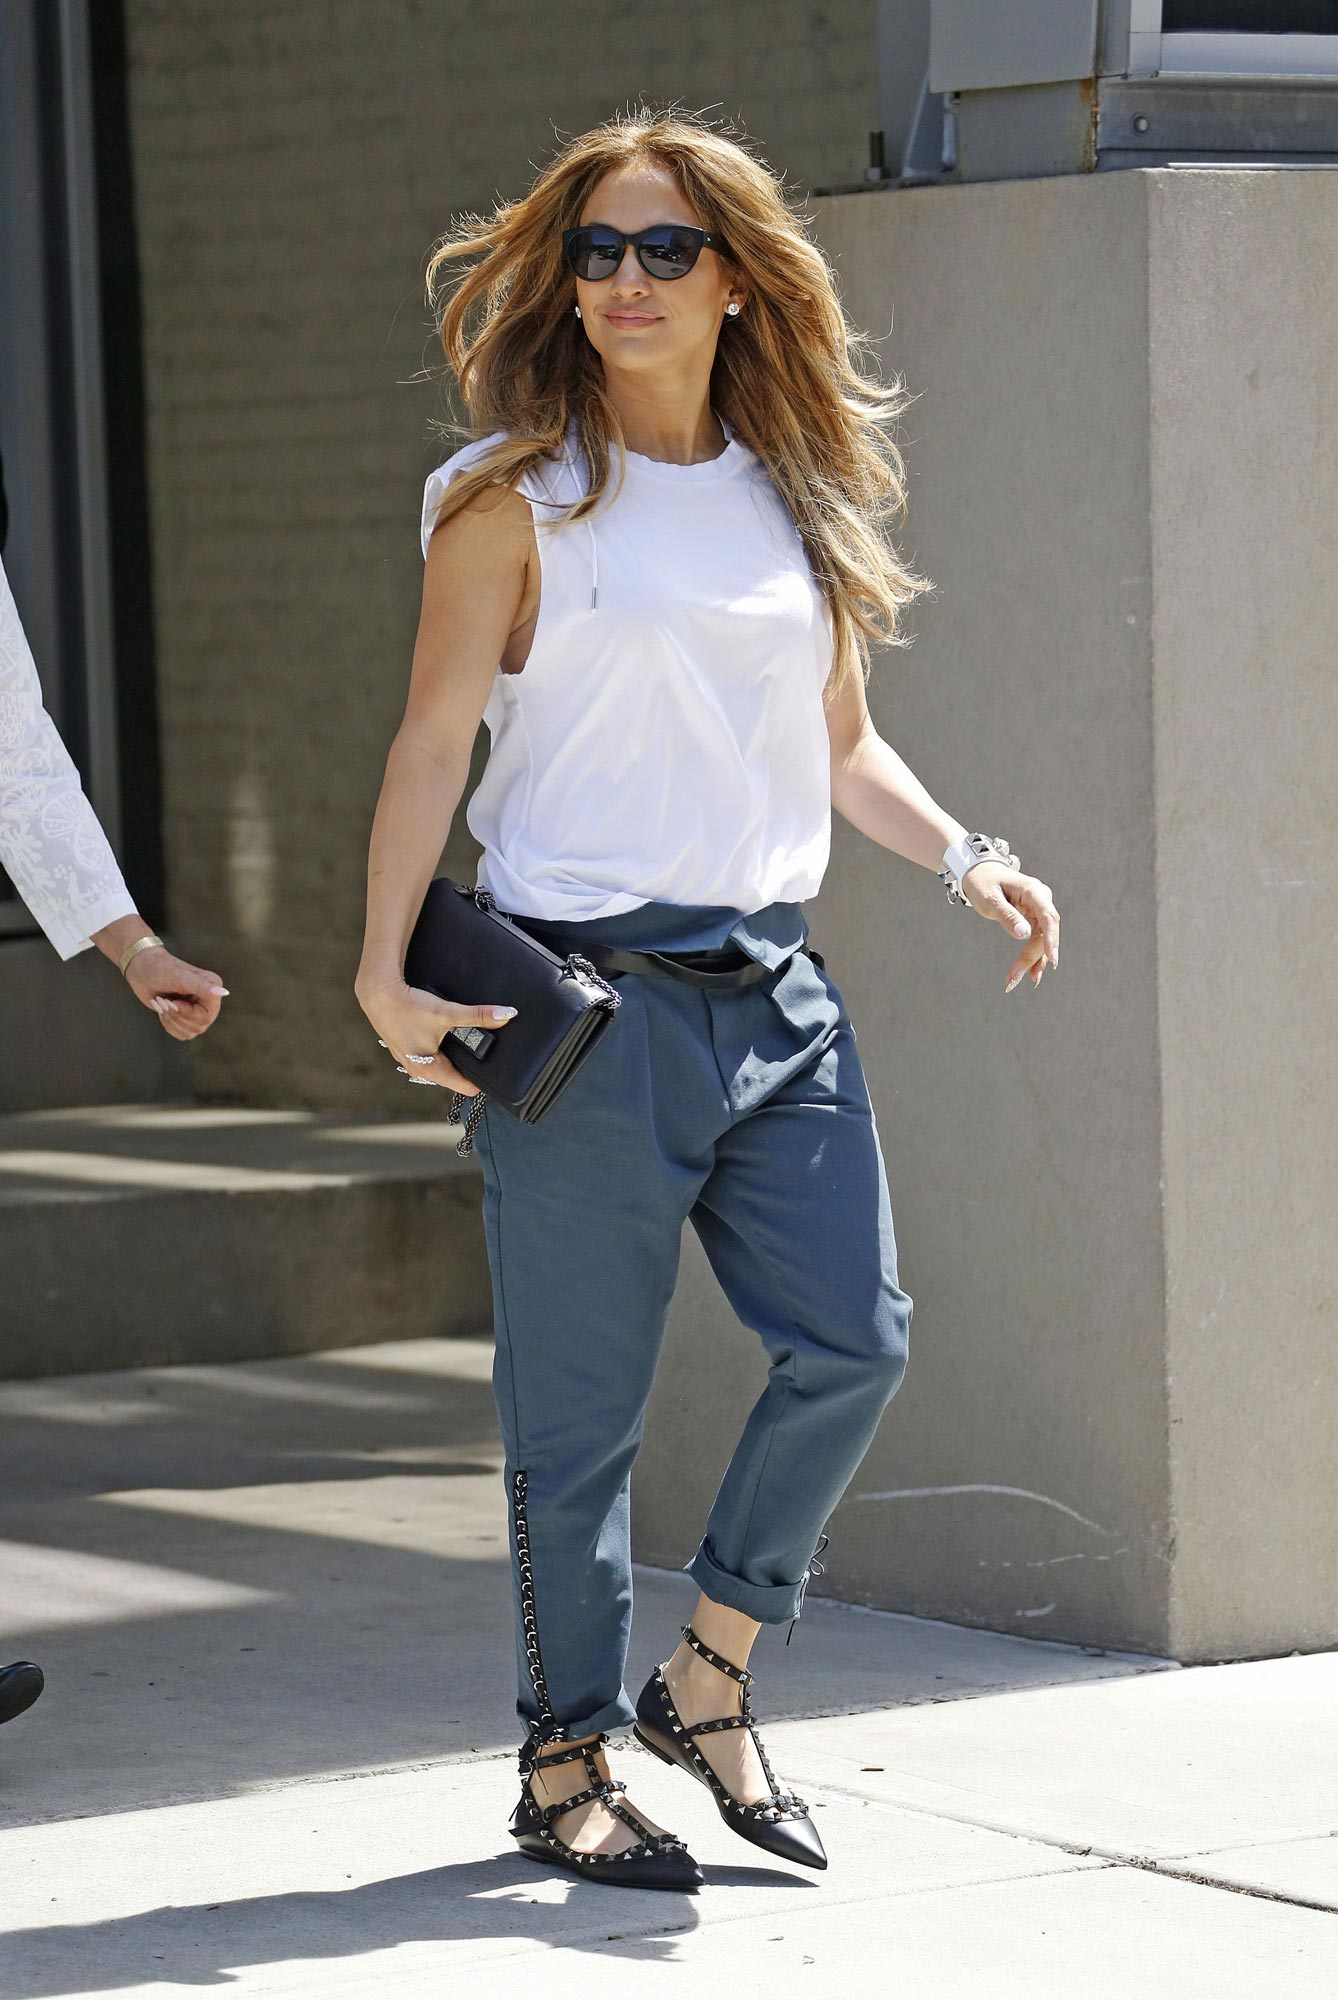 Jennifer Lopez Casual Style Images Galleries With A Bite